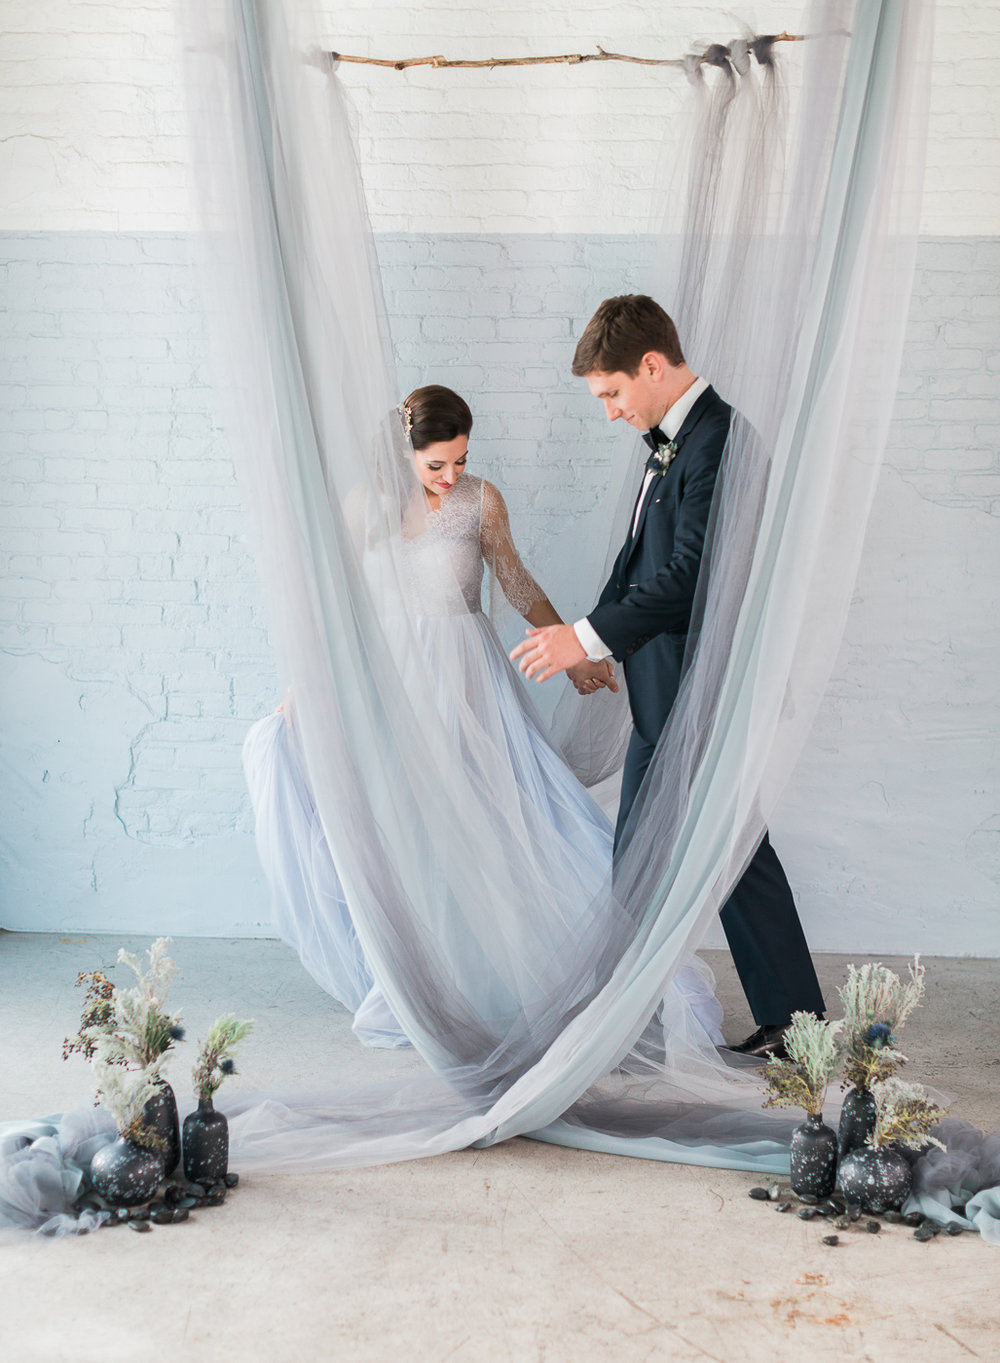 Misty Winter Coast Brooklyn Wedding Shoot-291.jpg